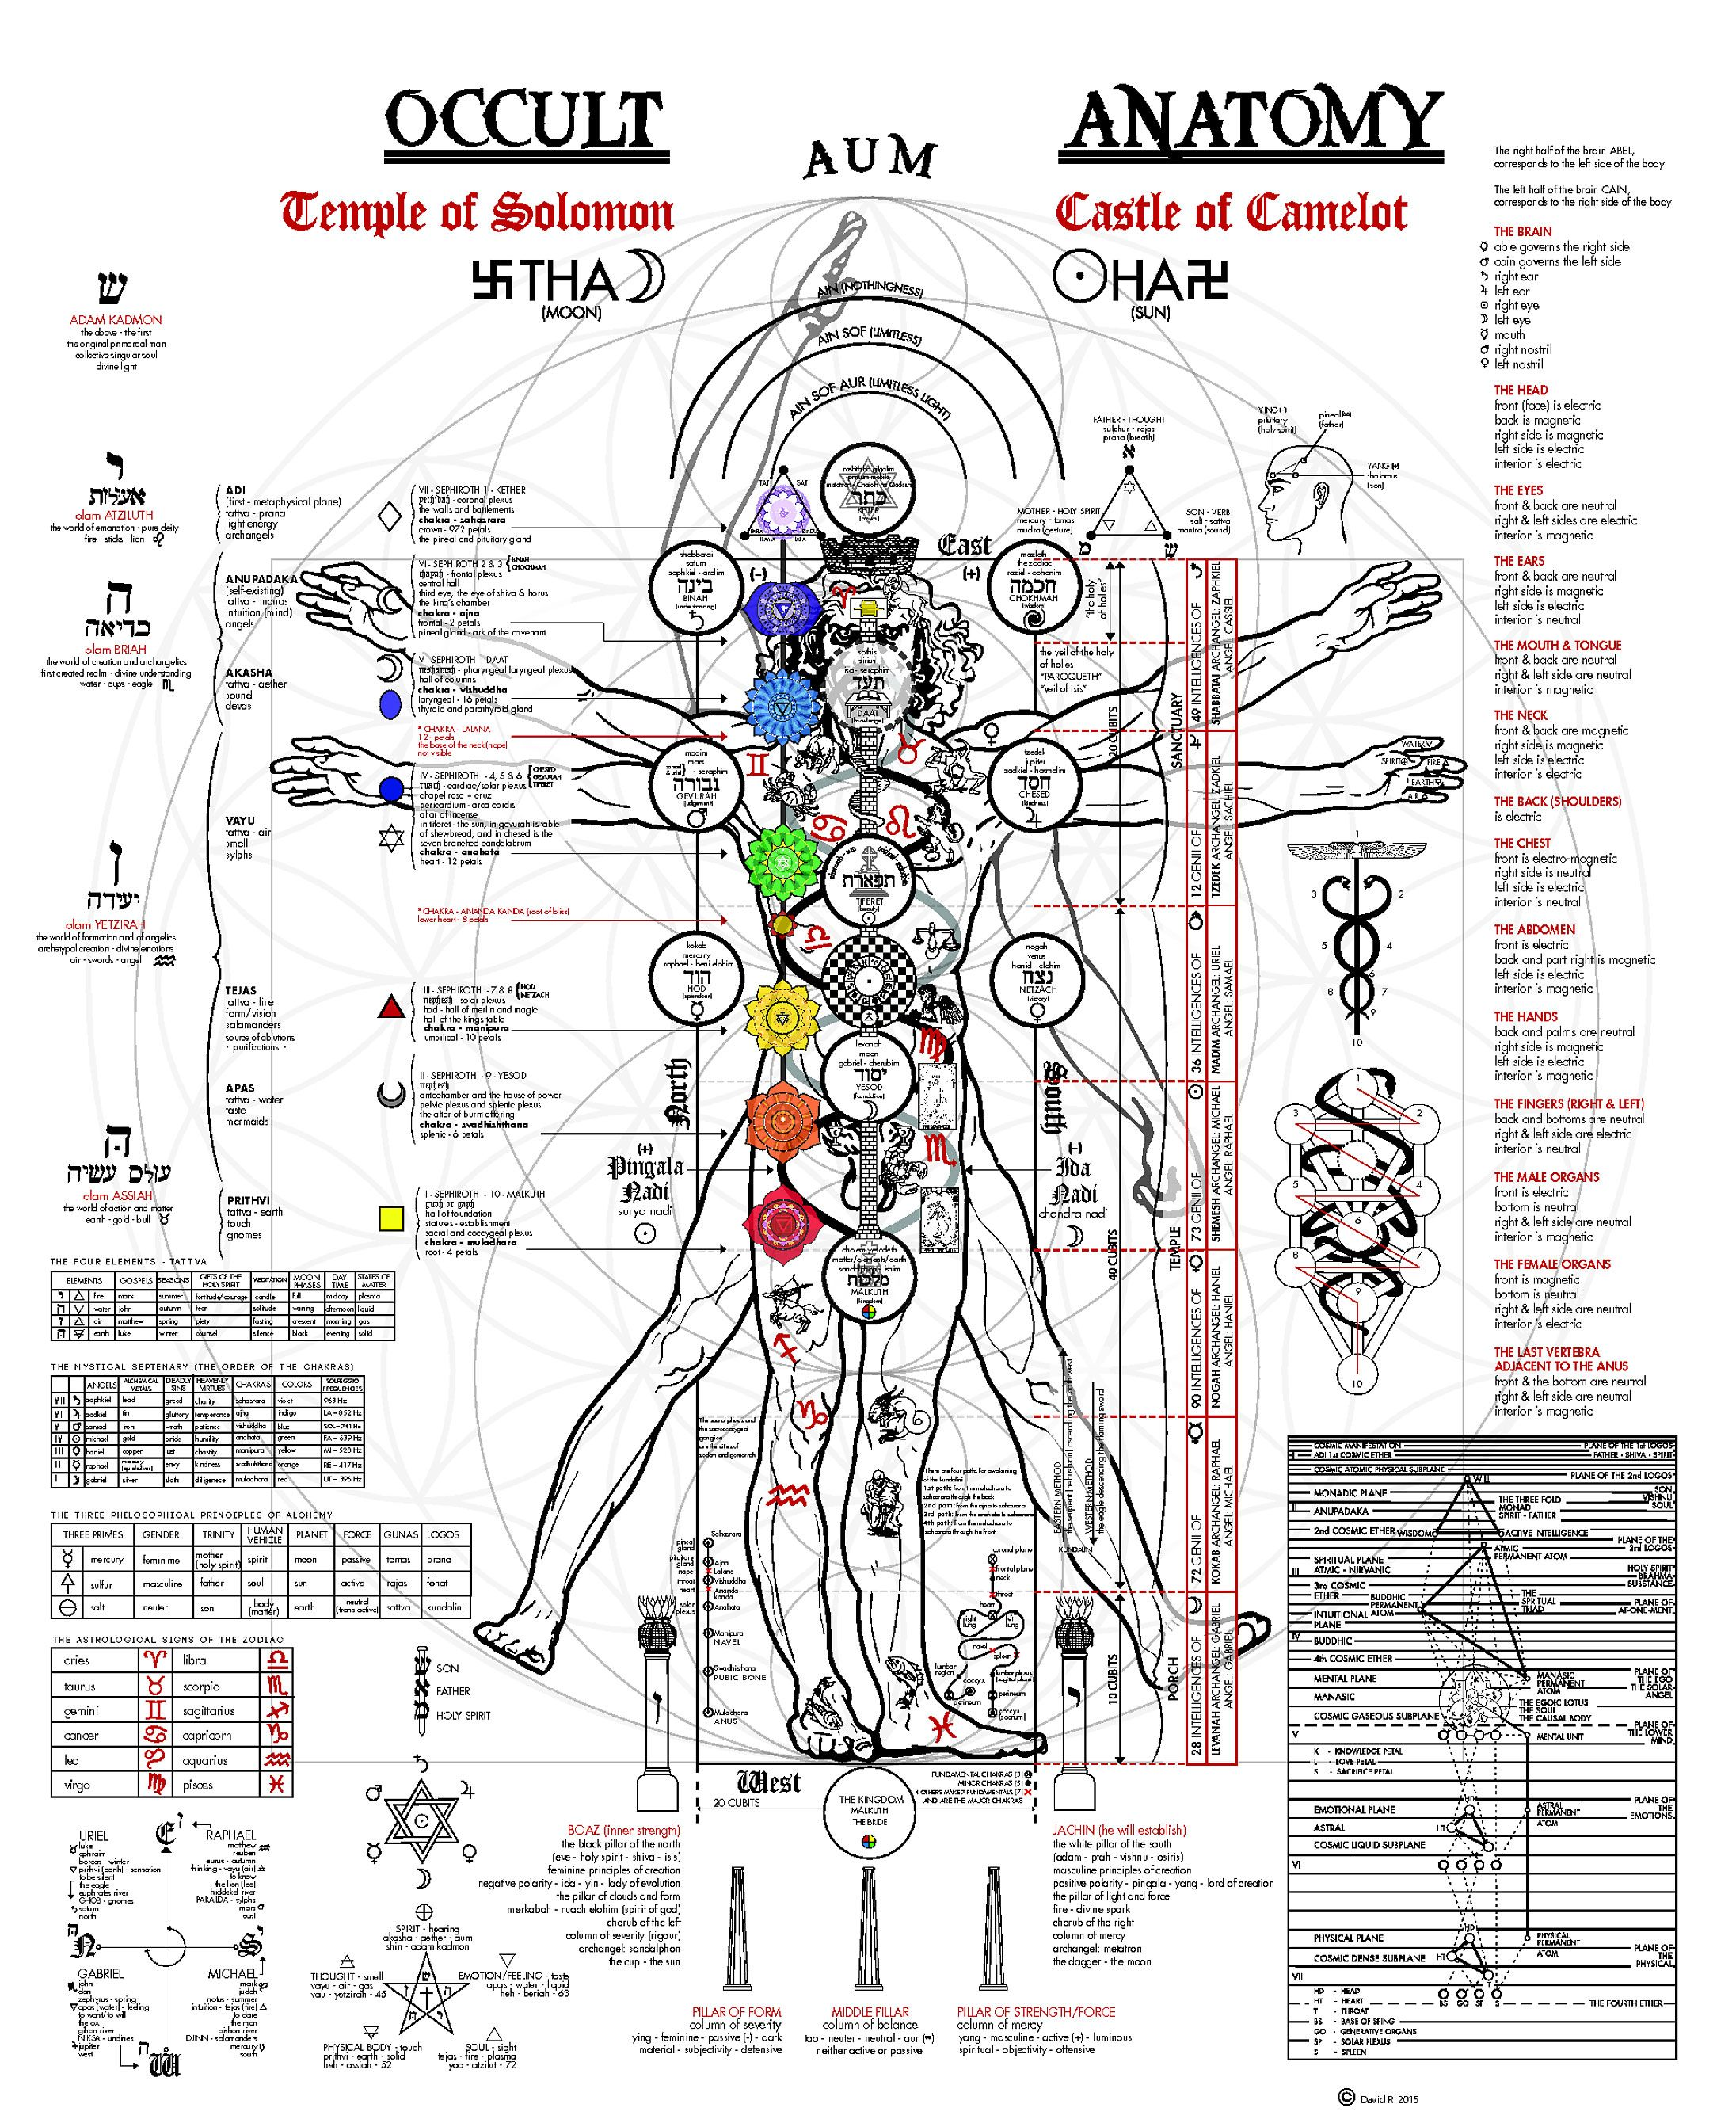 Check out these incredible images of the occult anatomy of the body ...